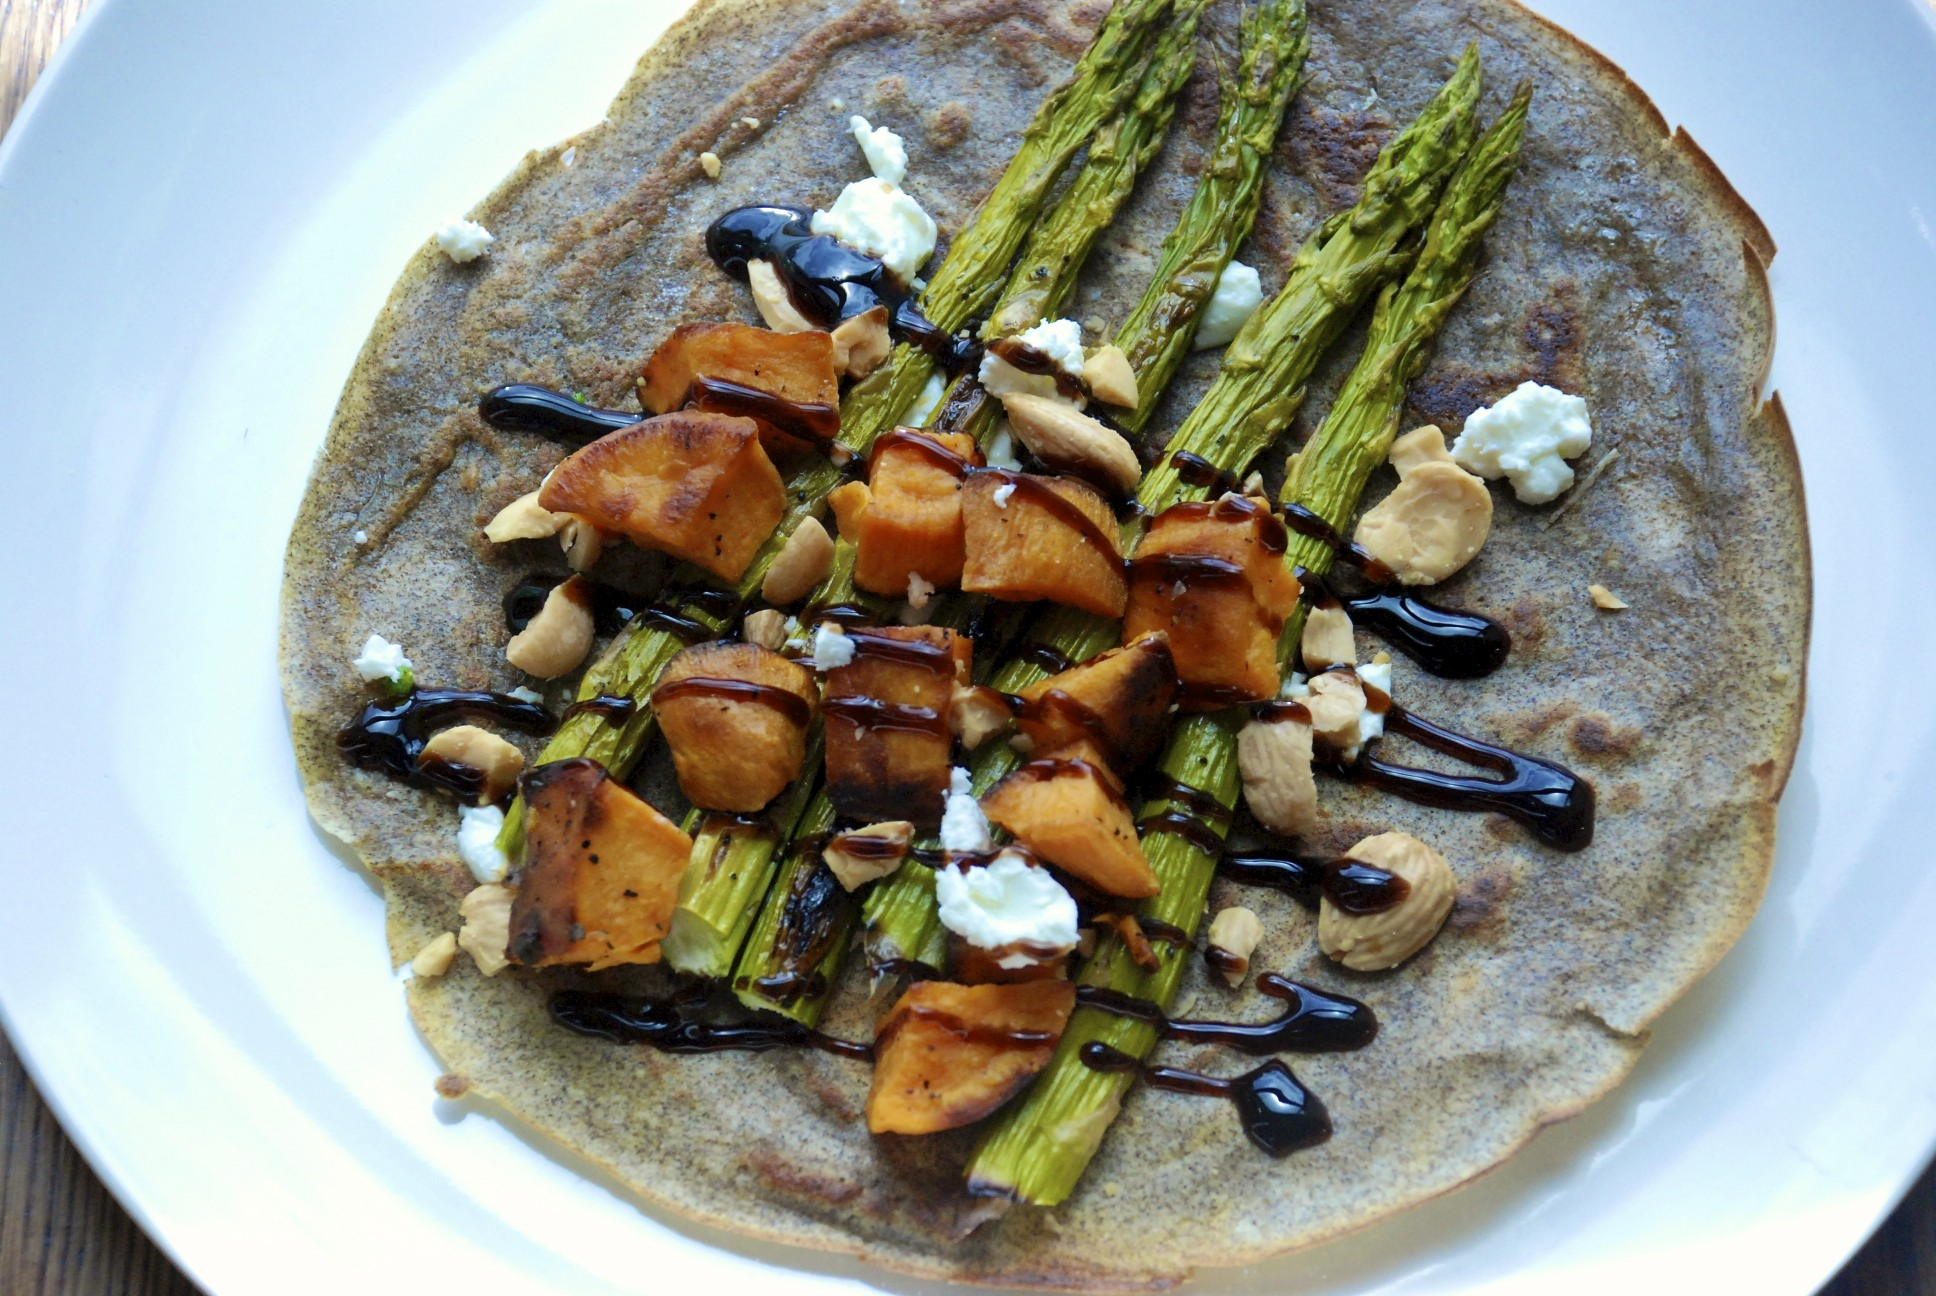 Almost-Vegetarian Crêpe